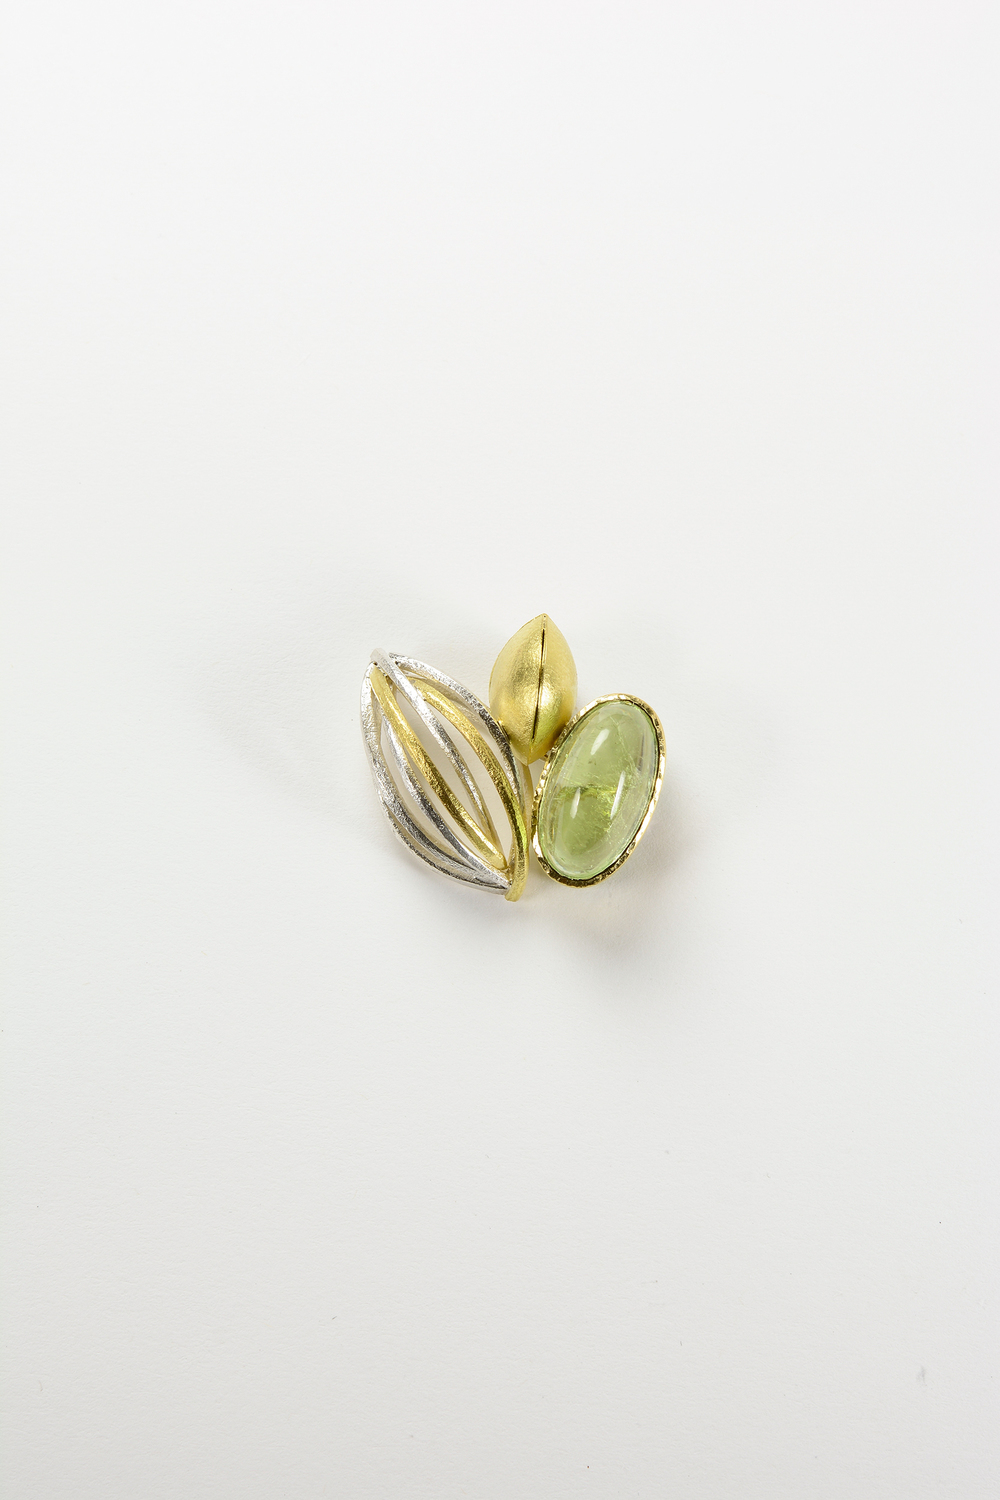 tide pool pin . 18ky gold sterling silver 9.40 ct tourmaline - 1600.00 . sold